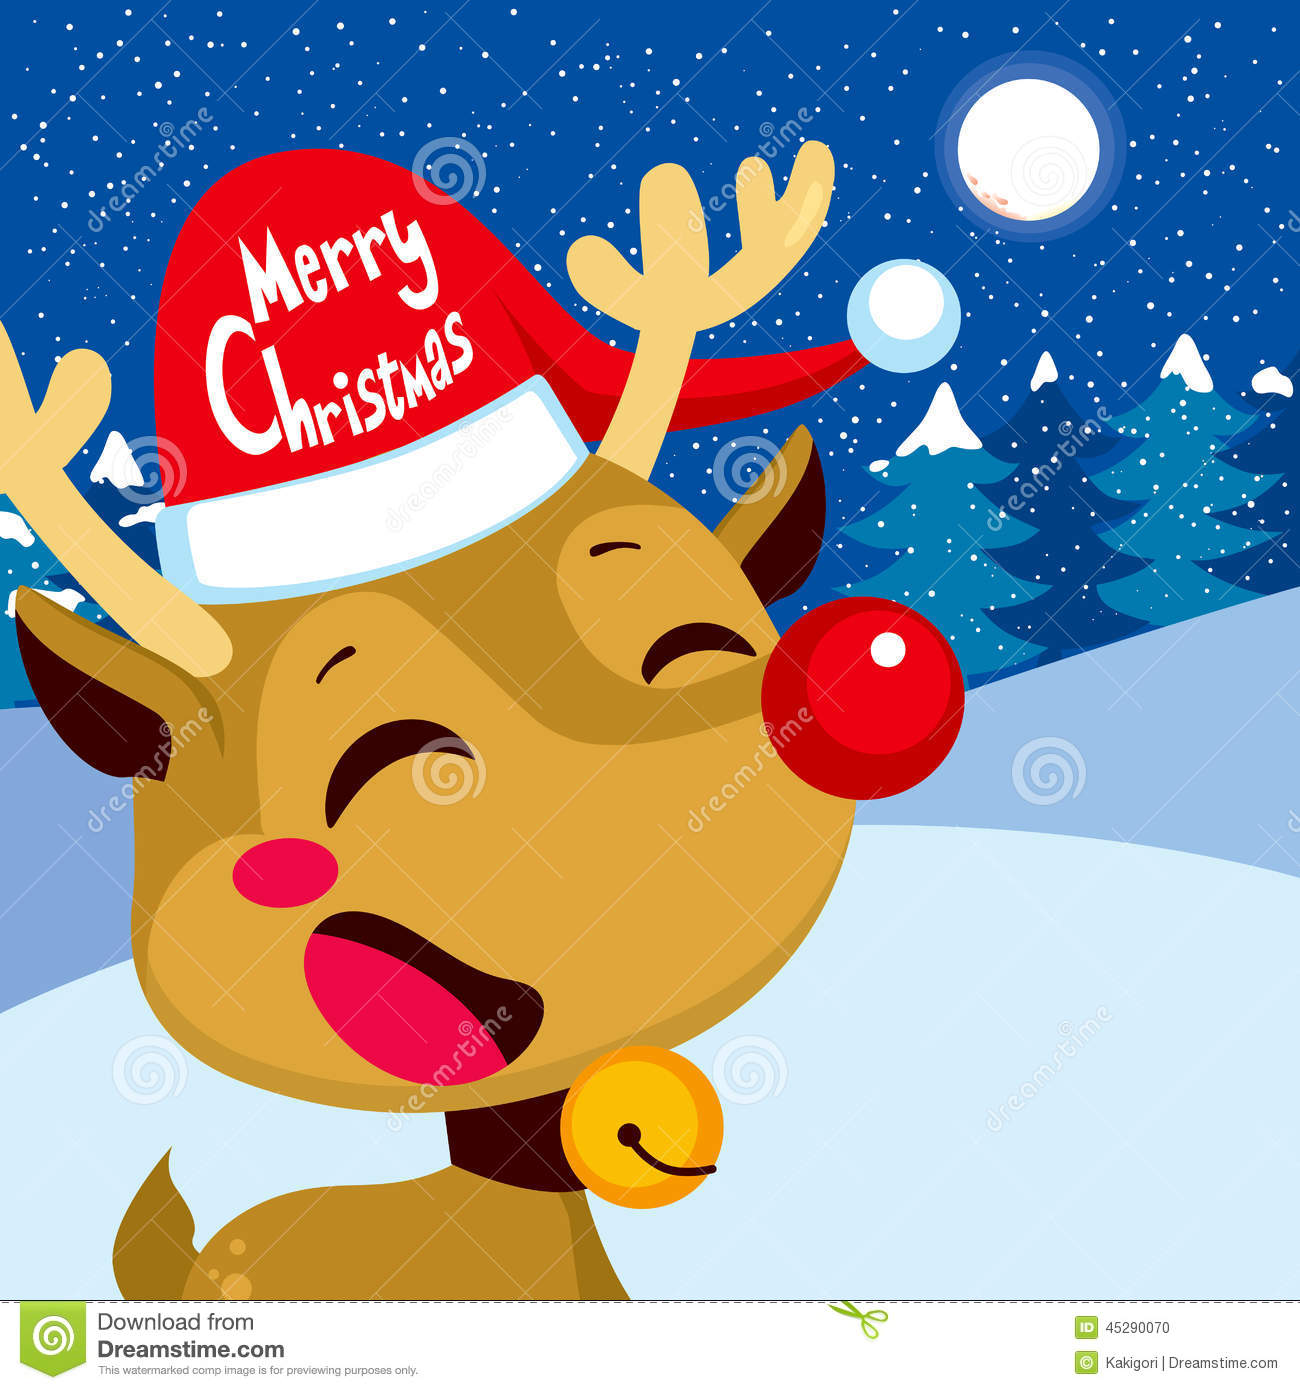 Free rudolph peeing animated christmas e-cards